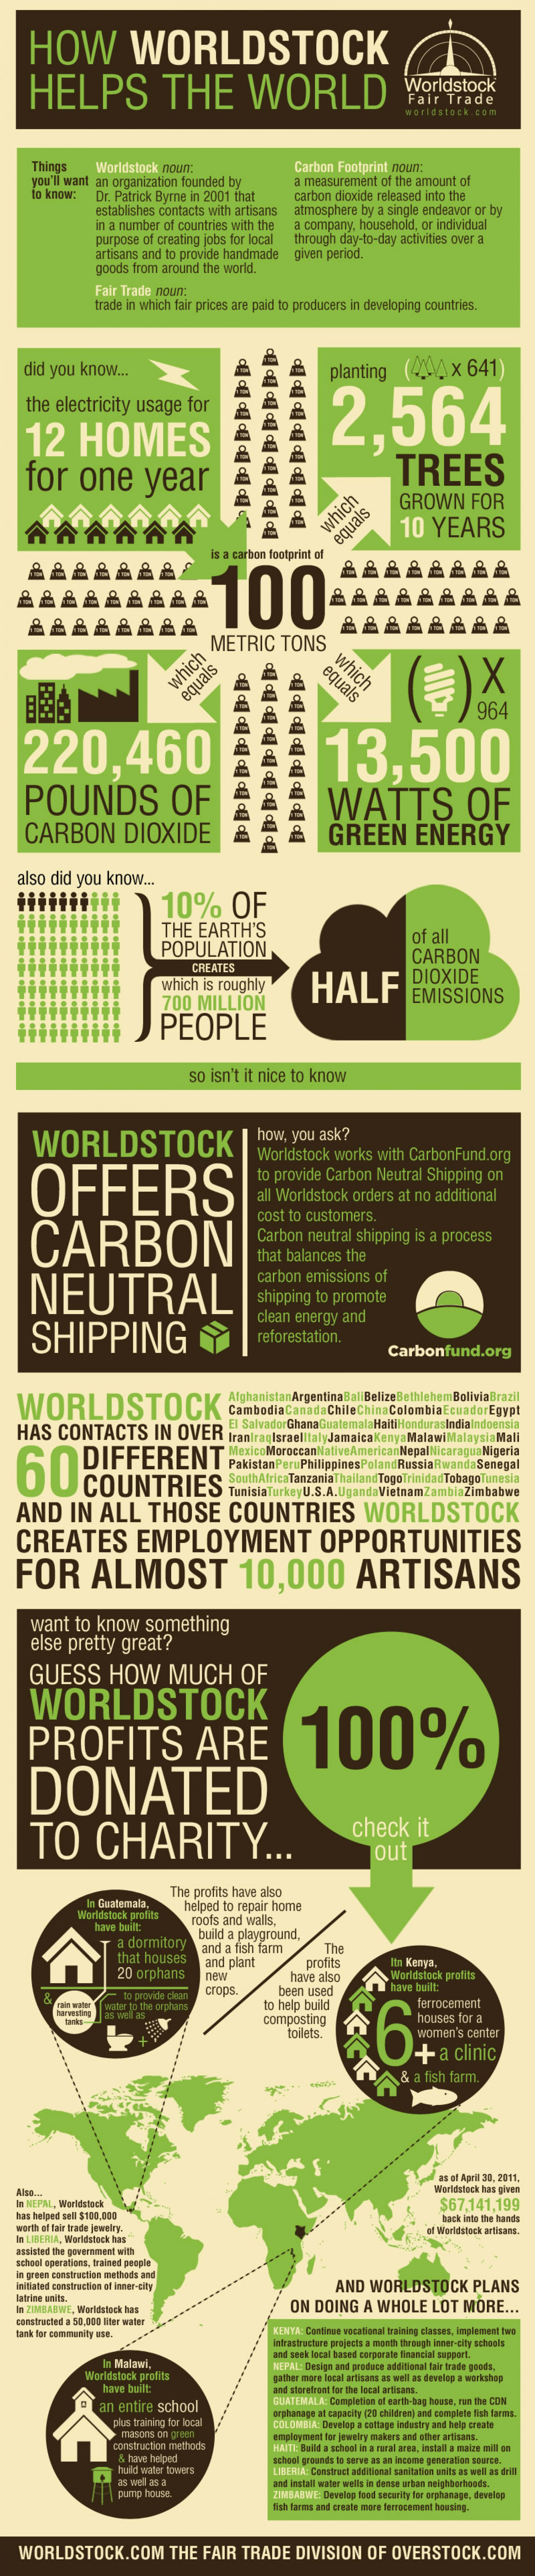 How Worldstock Helps the World Infographic